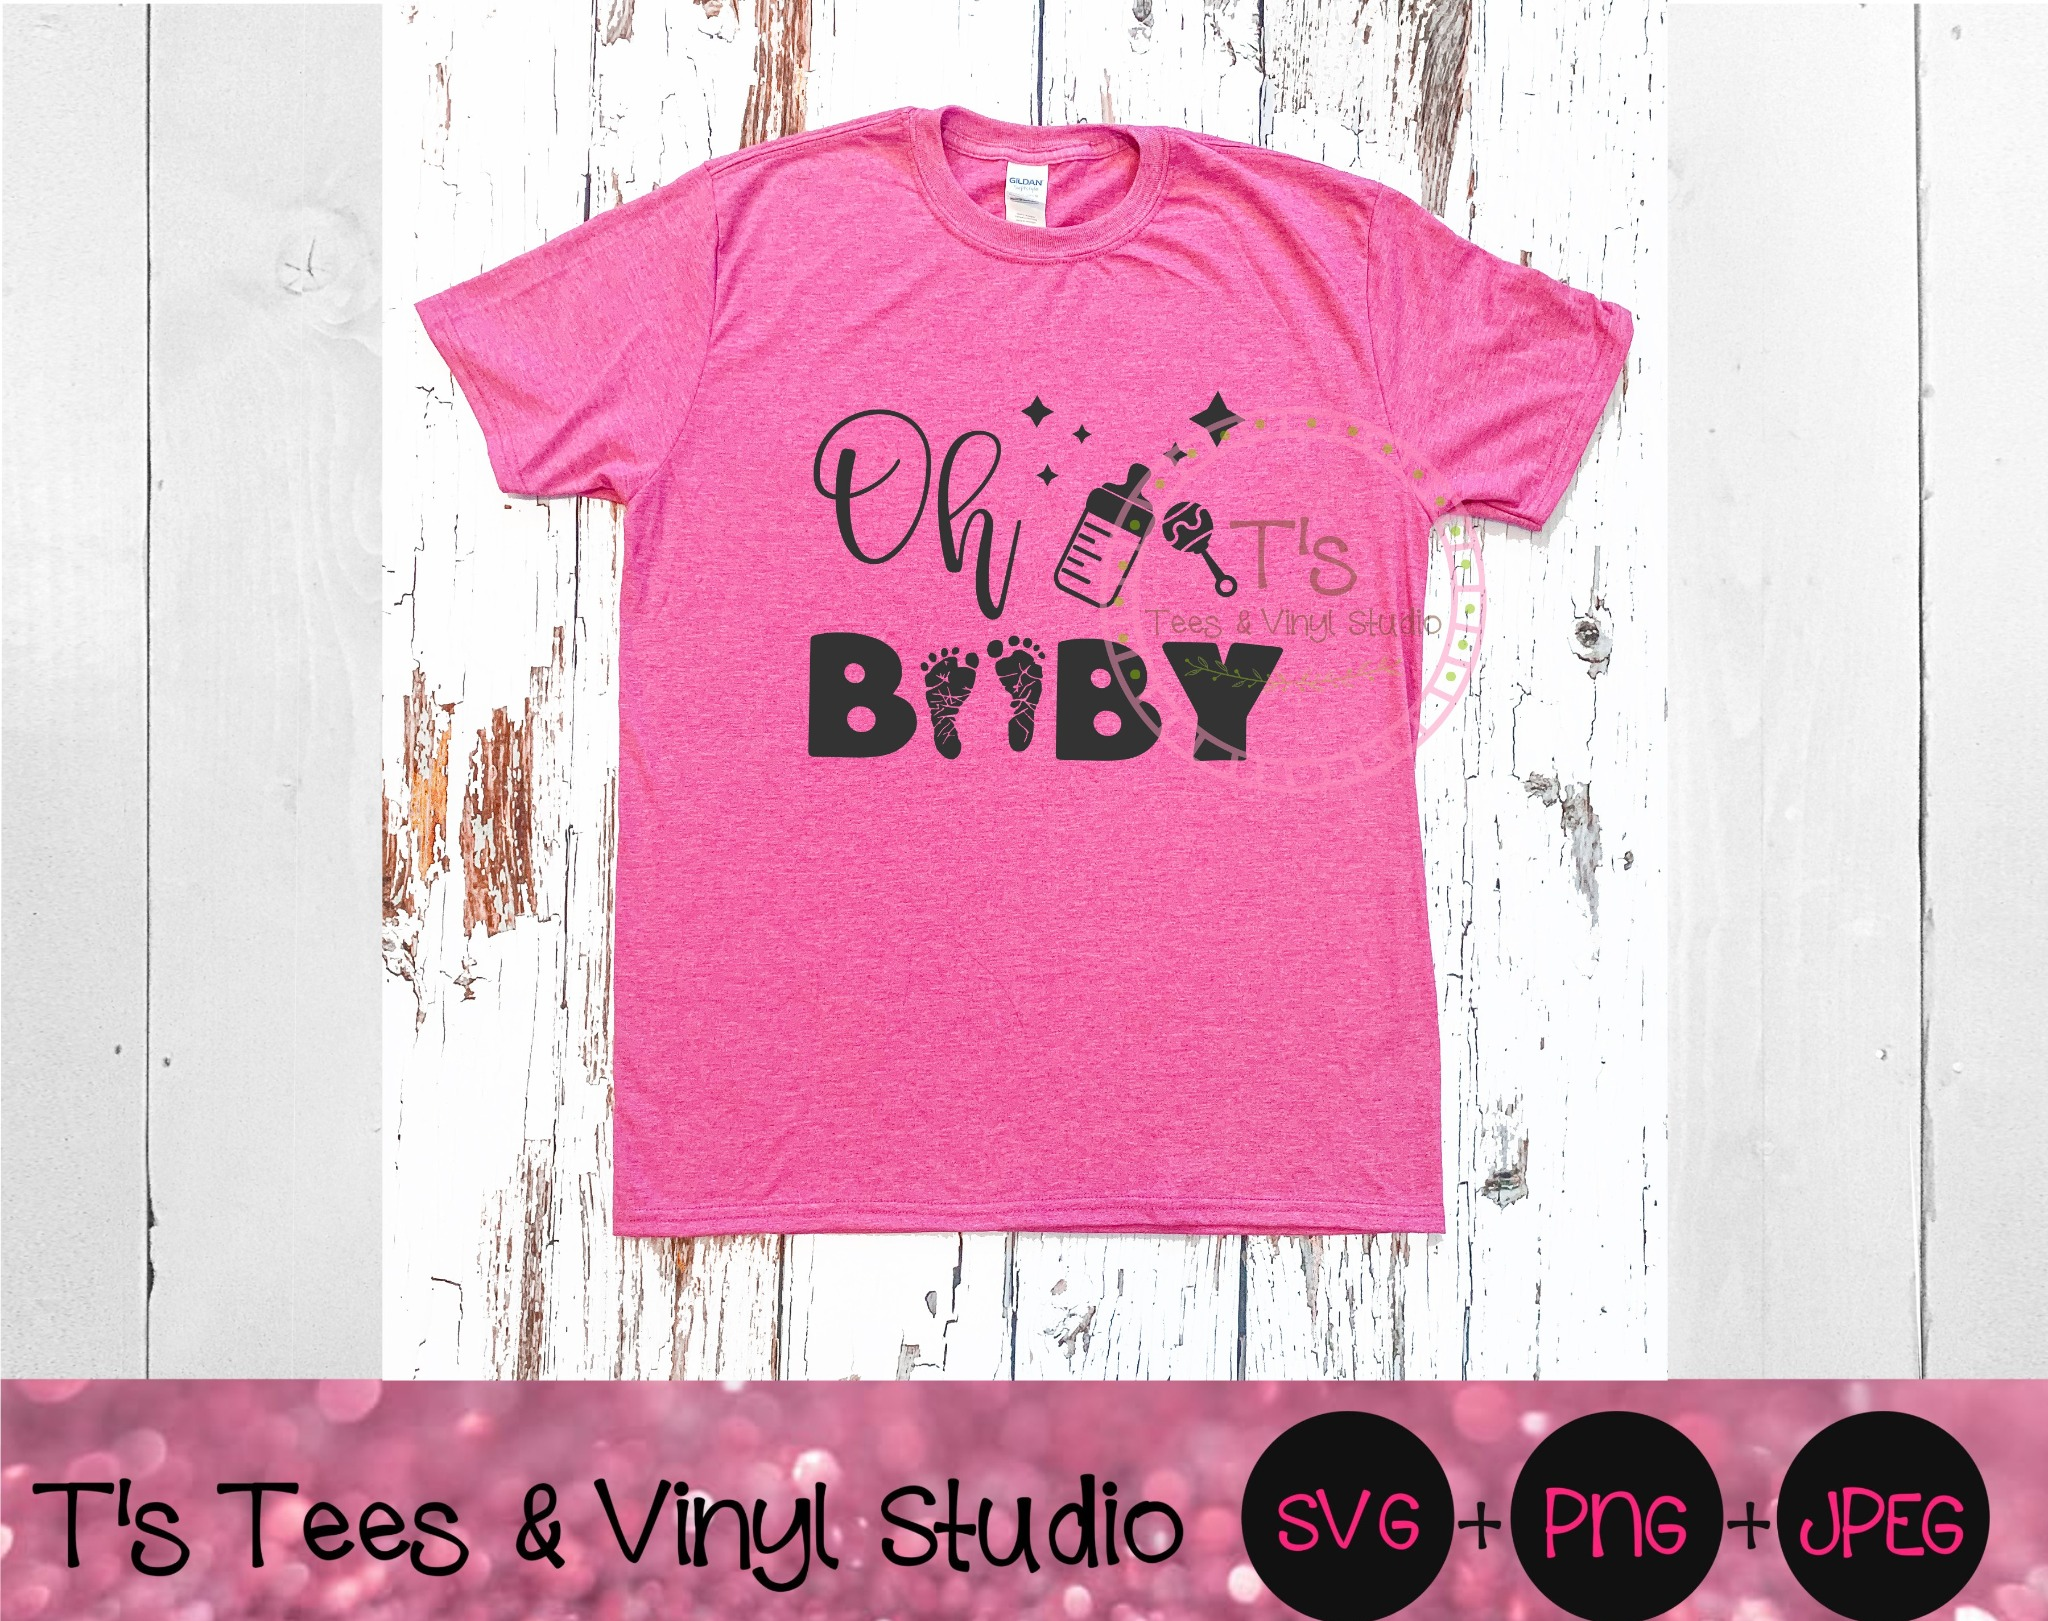 Oh Baby SVG, Pregnancy Announcement, Baby On Board, Baby Feet, Baby Toes, Footprints, Pregnant Belly